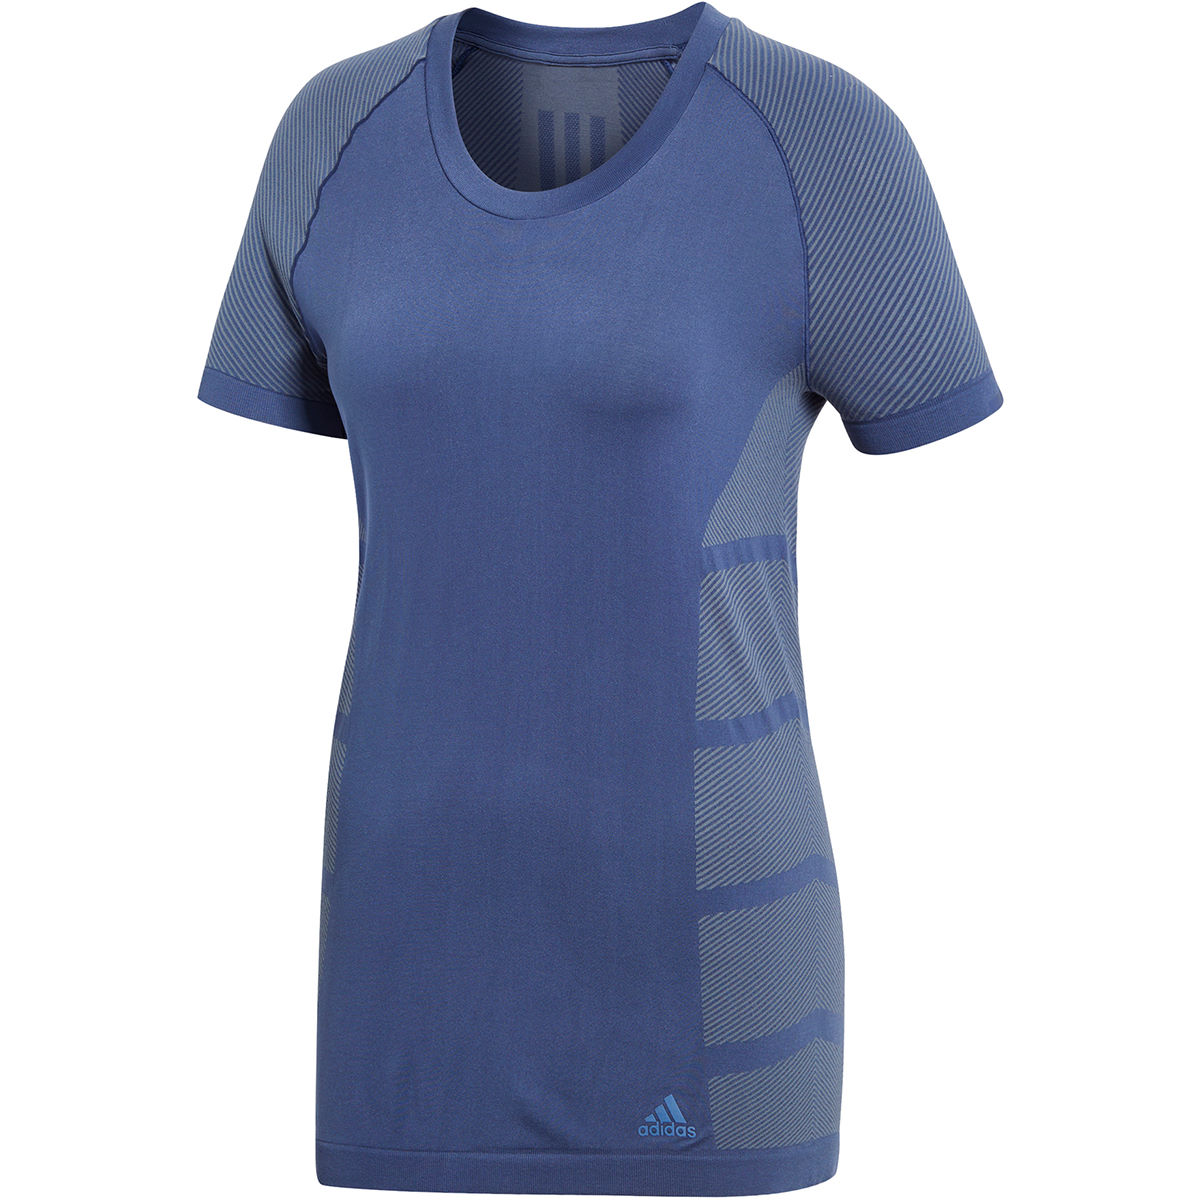 Maillot Femme Adidas Ultra Light (manches courtes) - Extra Small